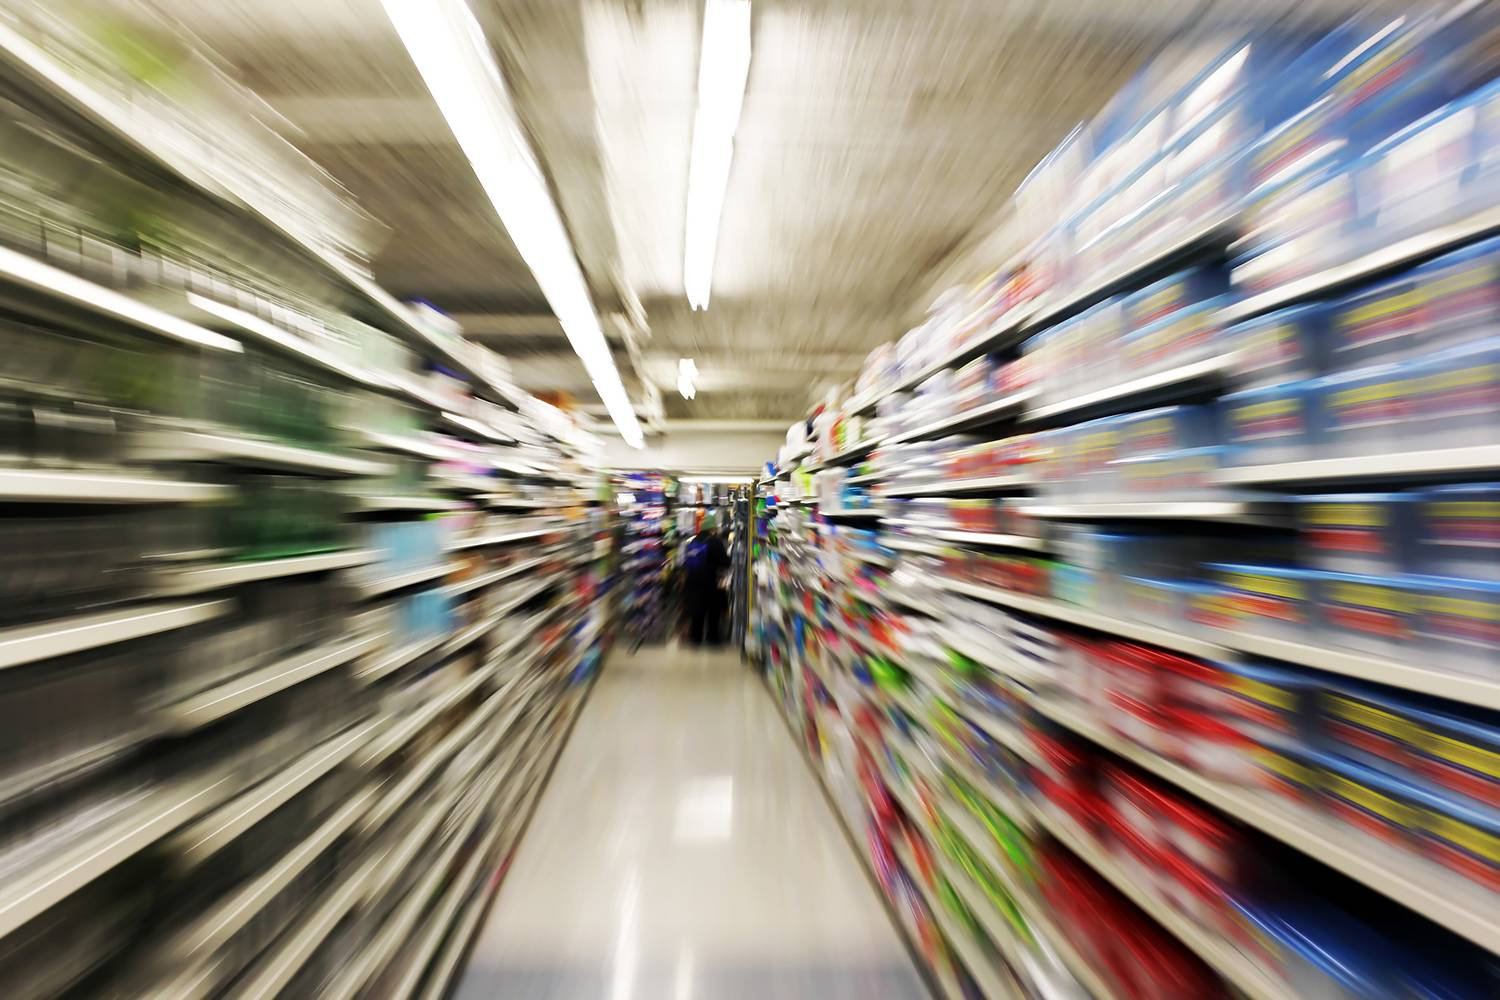 consumer choice, decision making, and perception